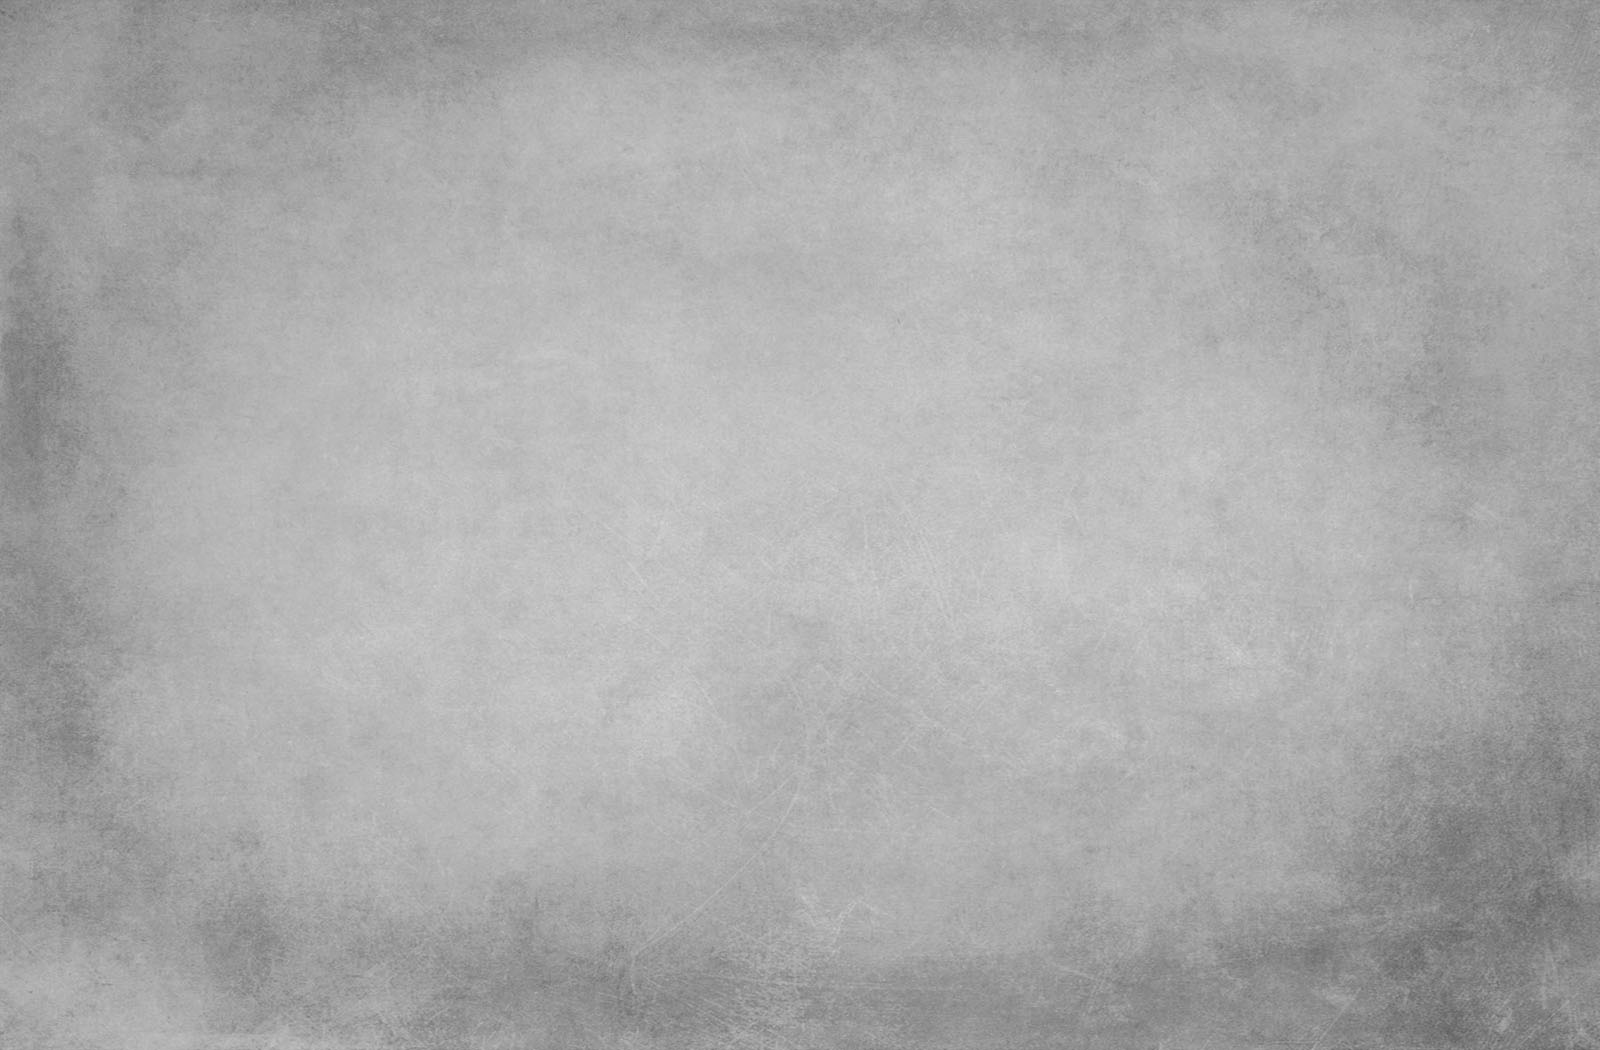 solid light gray wallpaper - photo #34